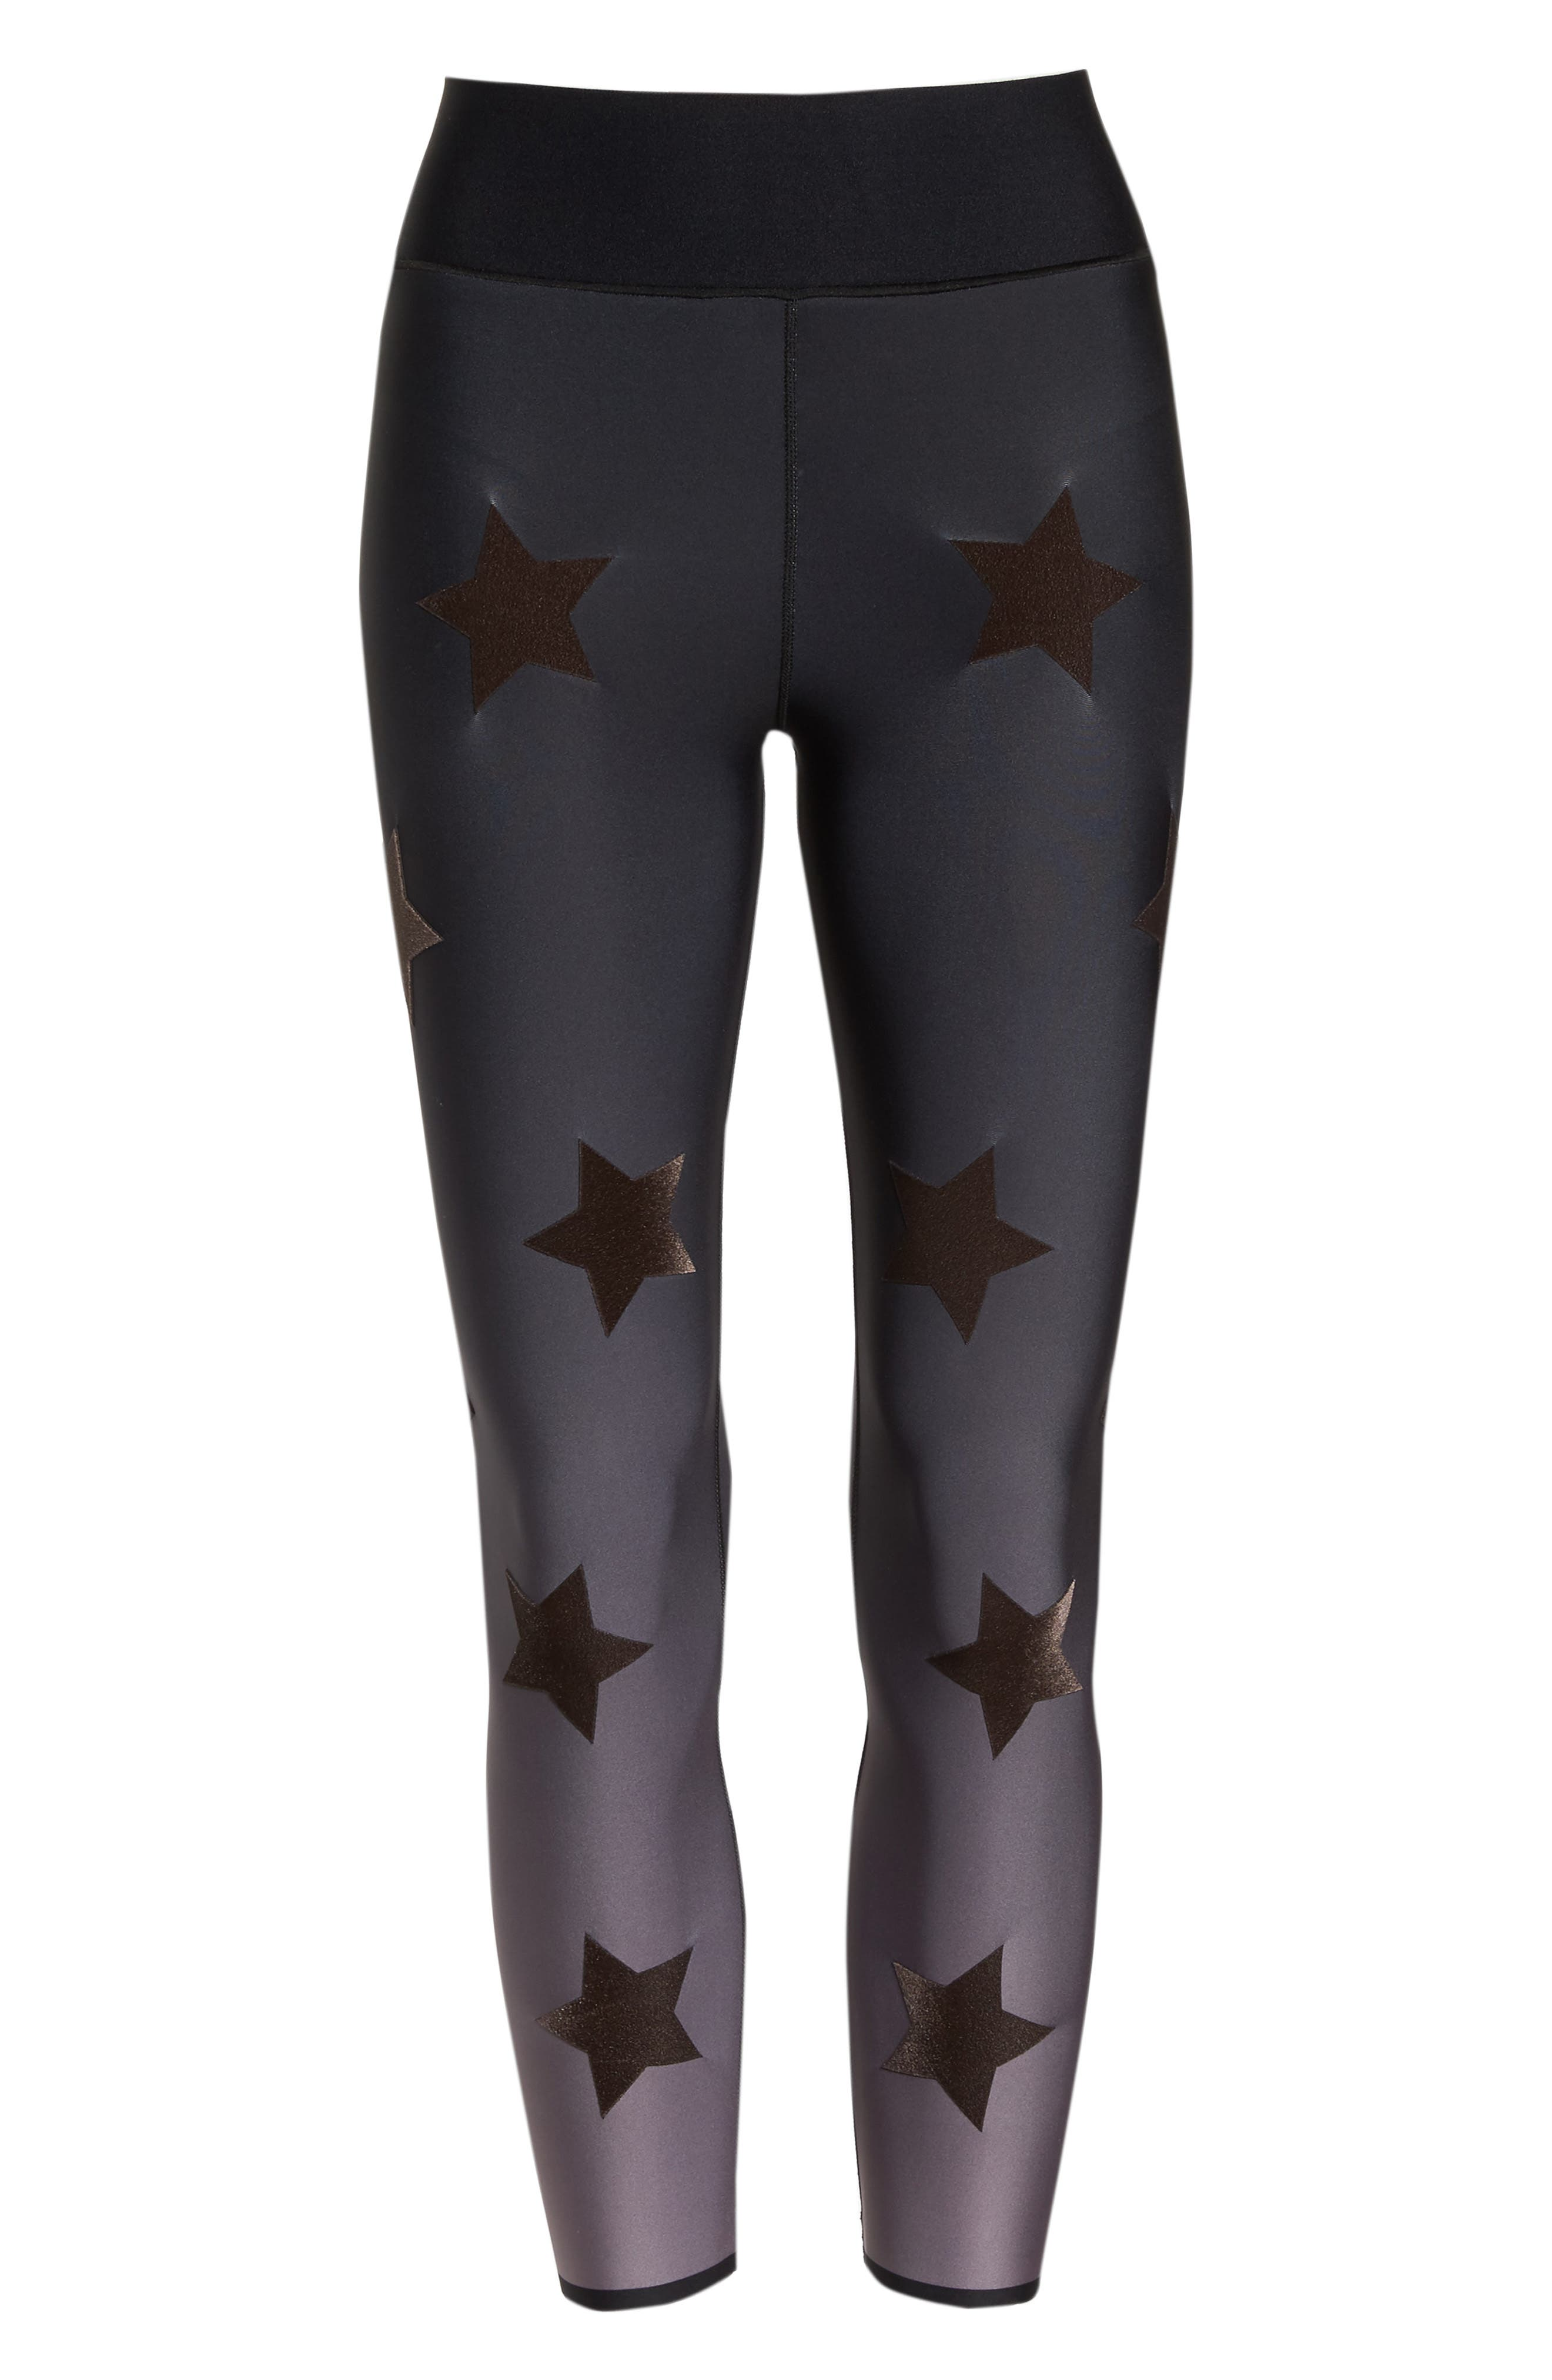 Sprinter High Waist Gradient Knockout Leggings,                             Alternate thumbnail 7, color,                             020